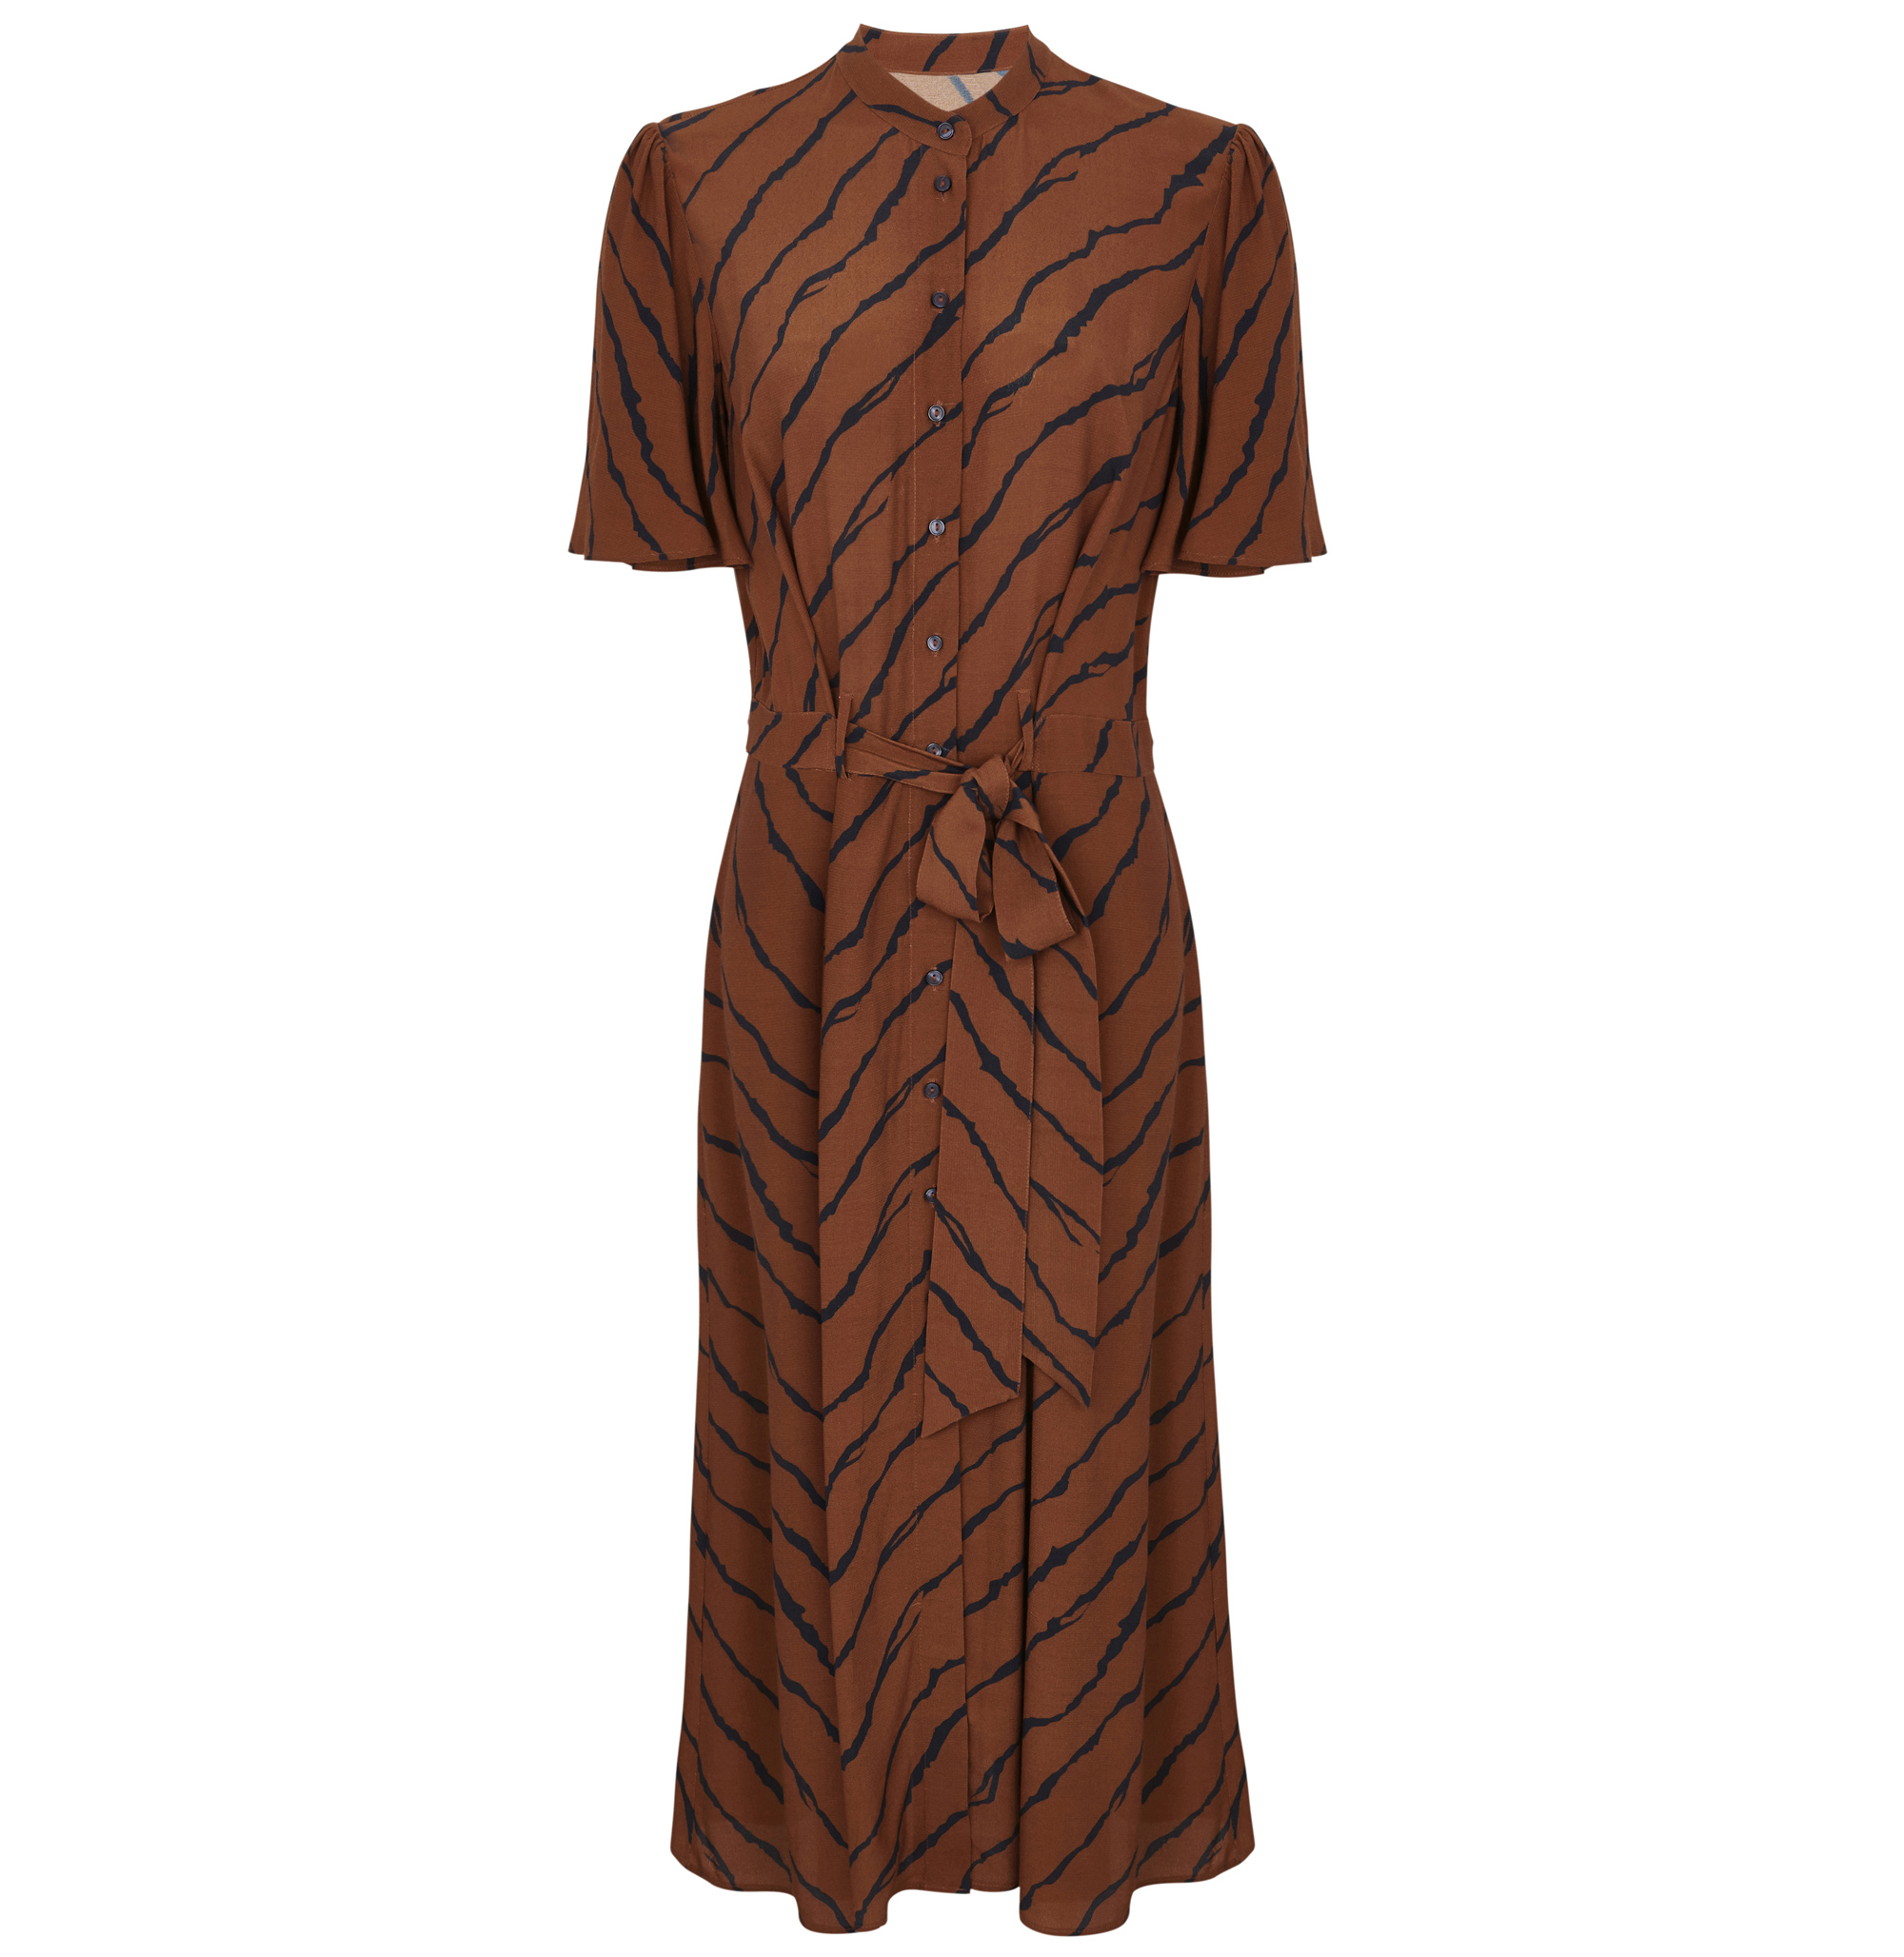 Marks and Spencer Autograph Dress